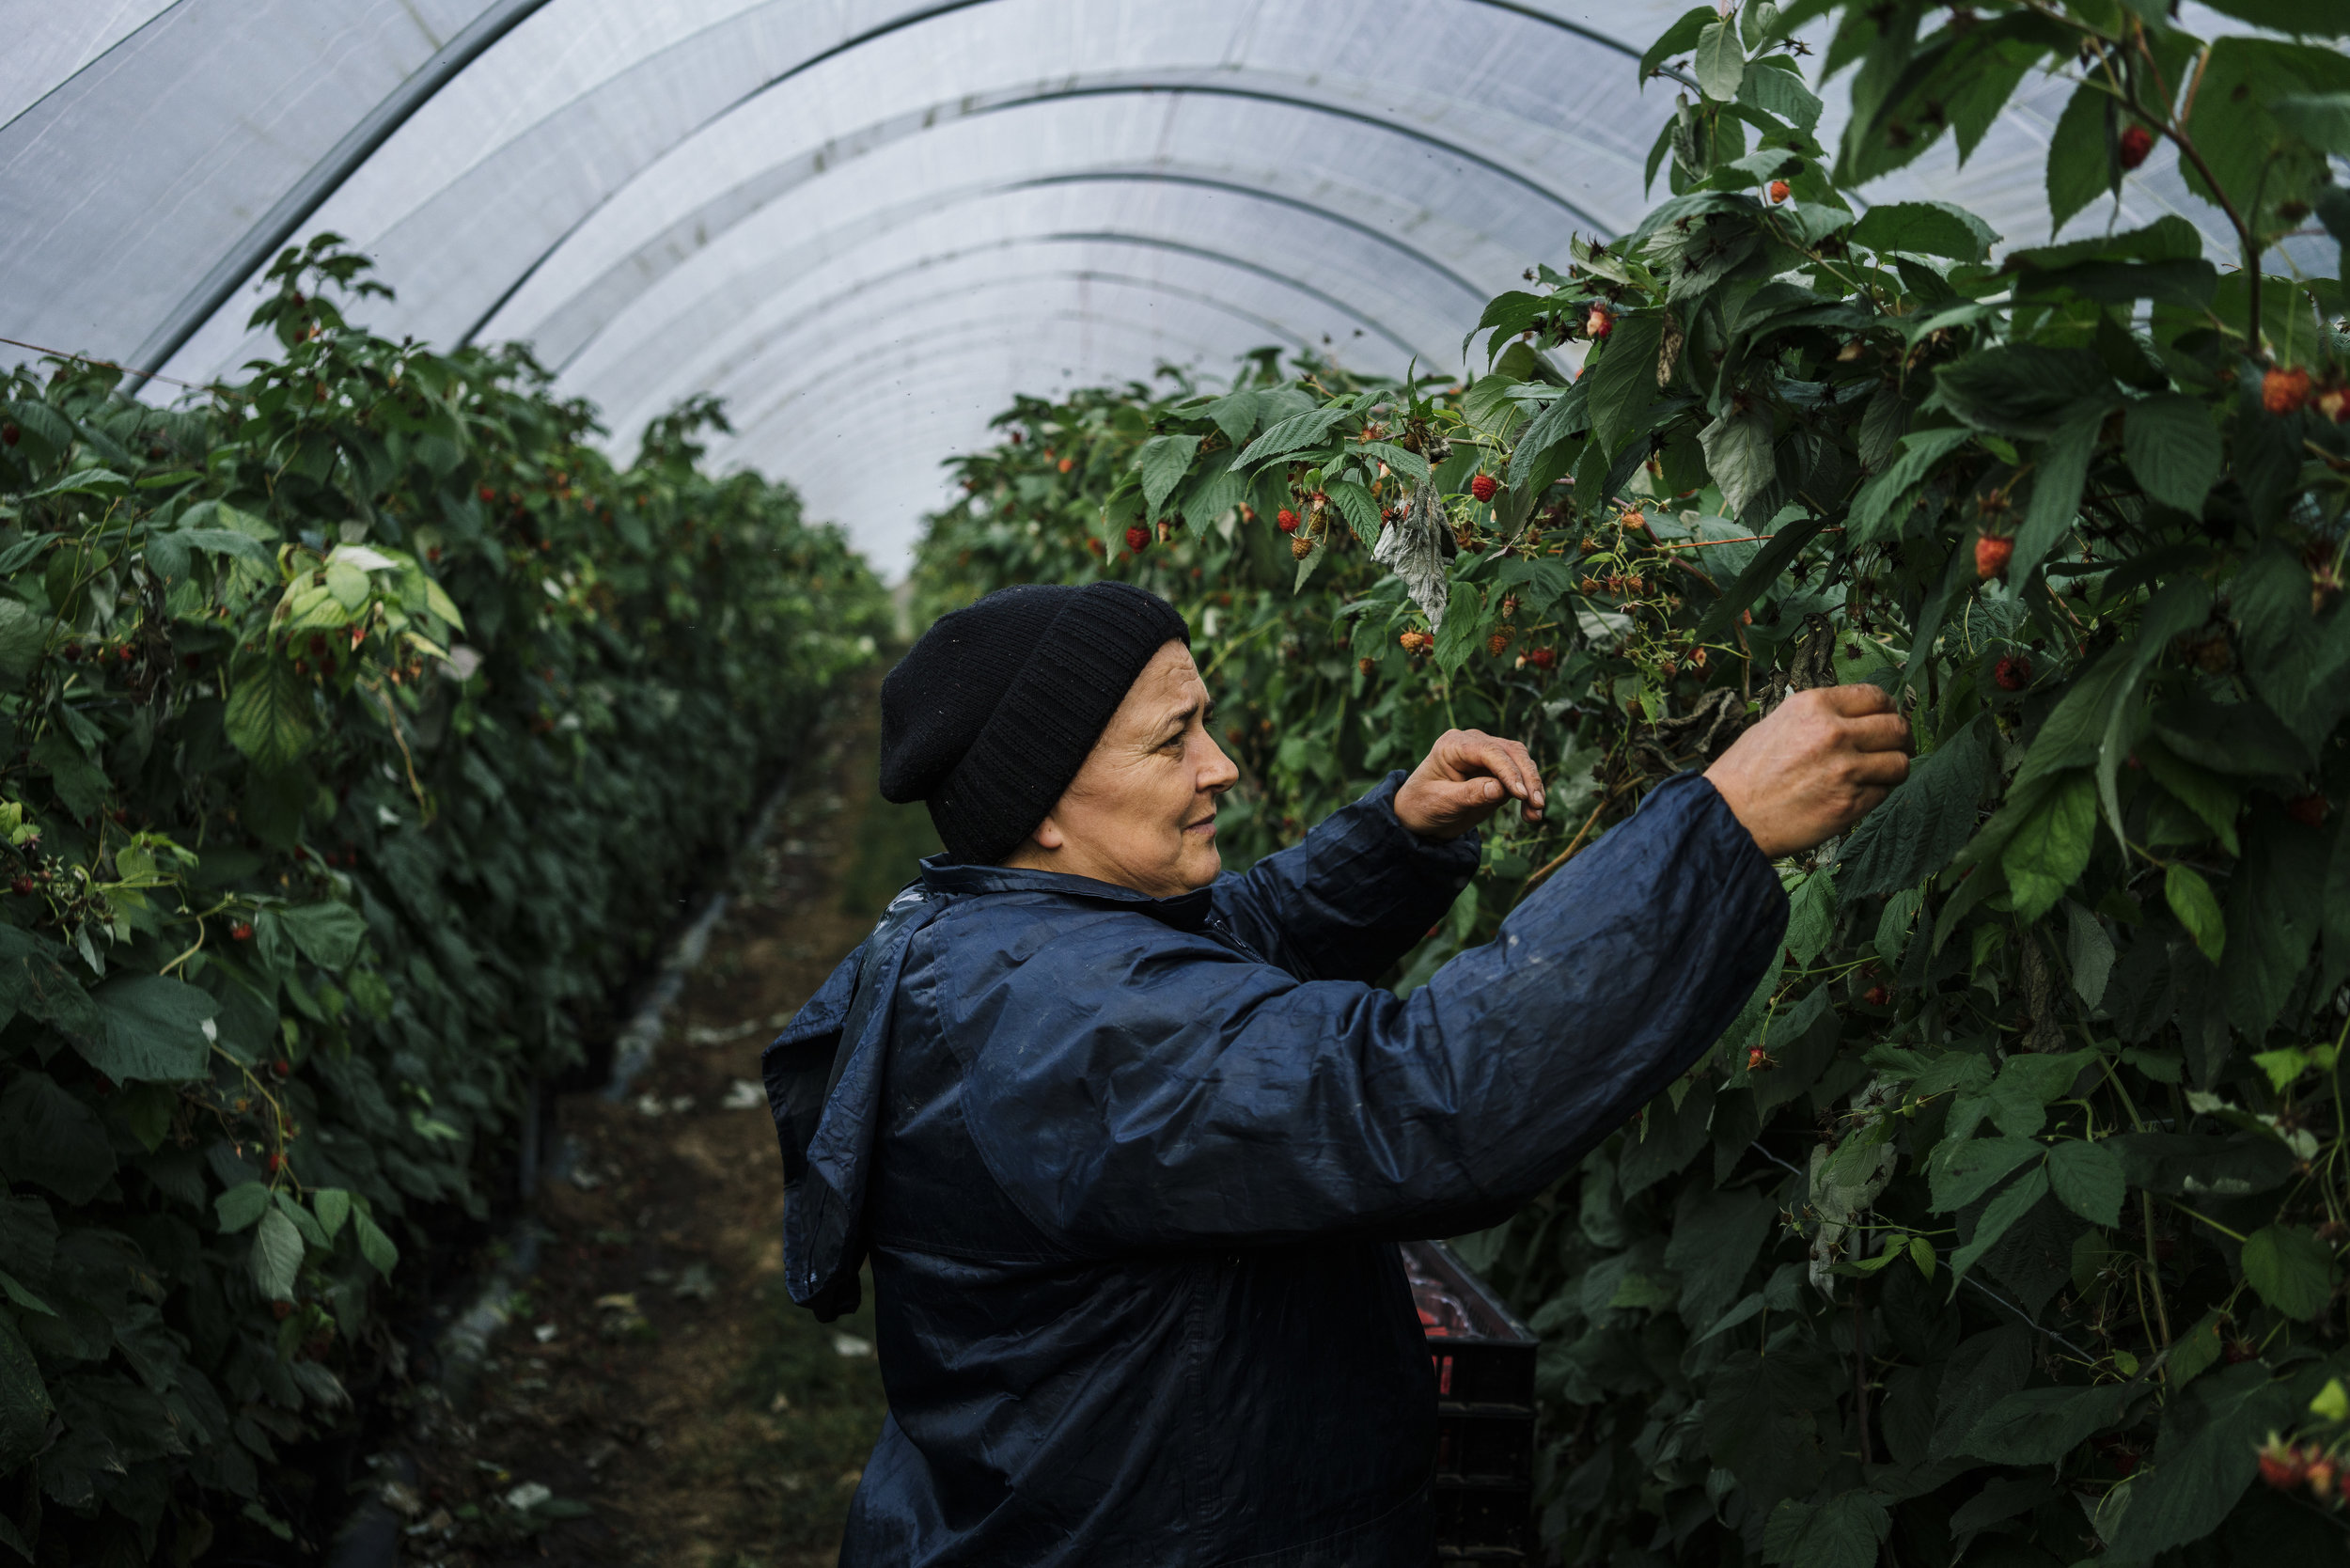 A Bulgarian fruit picker picks raspberries in a tunnel at Oakdene Farm, a fruit and vegetable farm owned by W.B. Chambers & Son in Langley, Kent, England, Thursday, Nov. 16, 2017. (David Azia for NBC News)